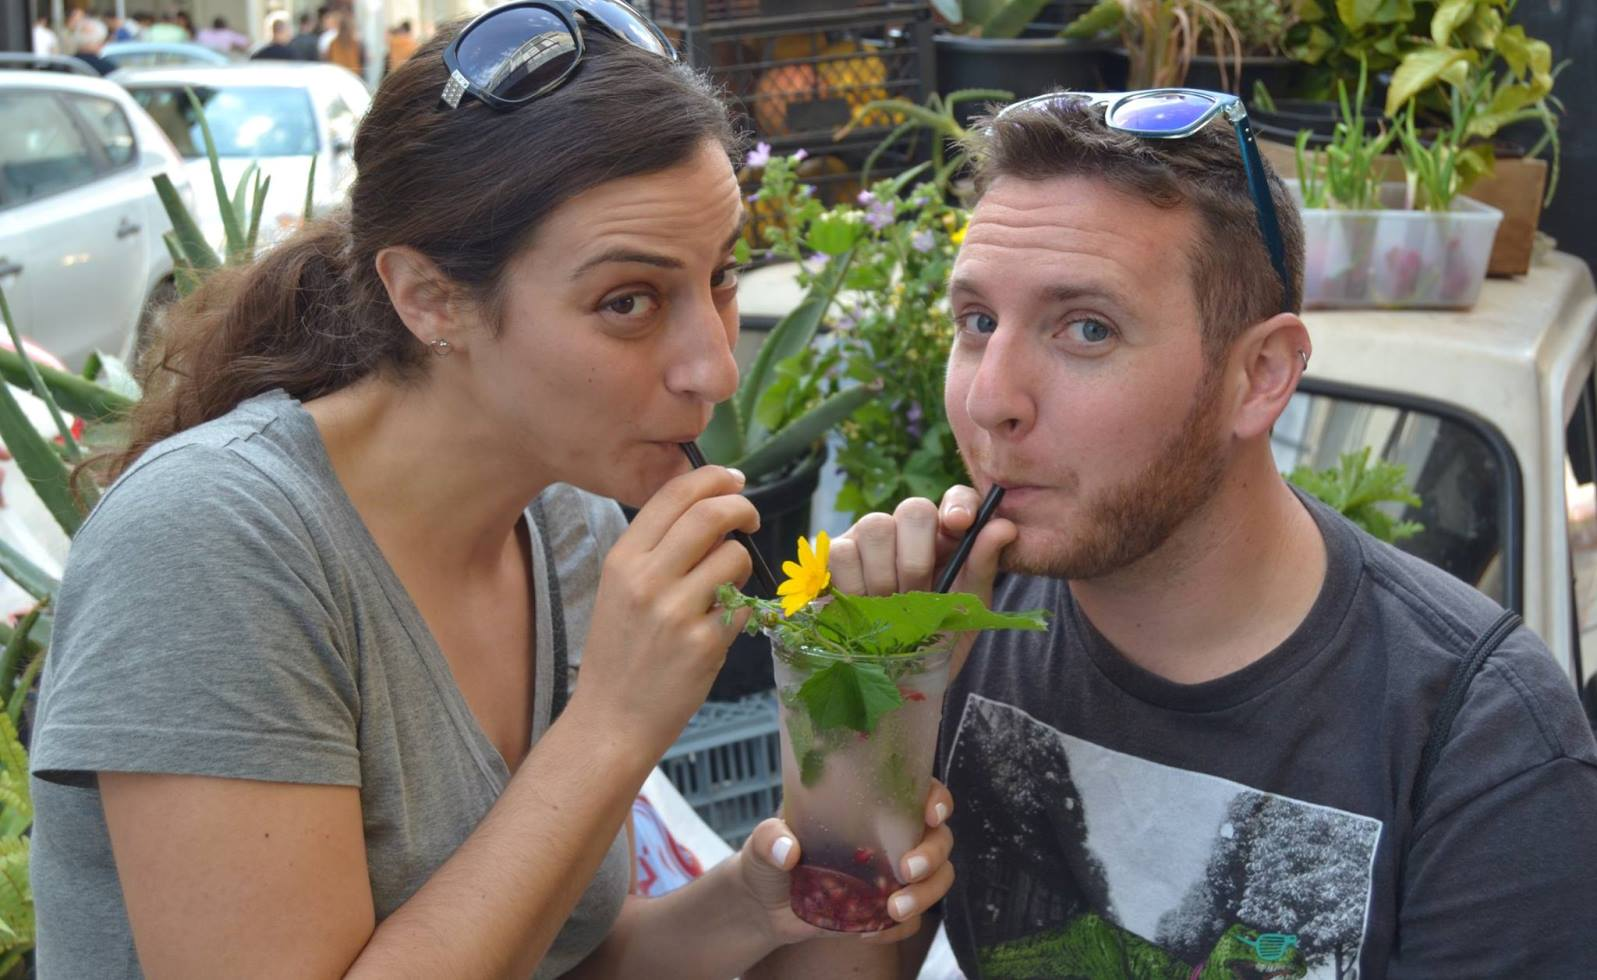 Sarah Cohen and Adam Margolis sipping an original Gazoz on a tour of Florentin. Photo via Aaron Gertz Tours Facebook page